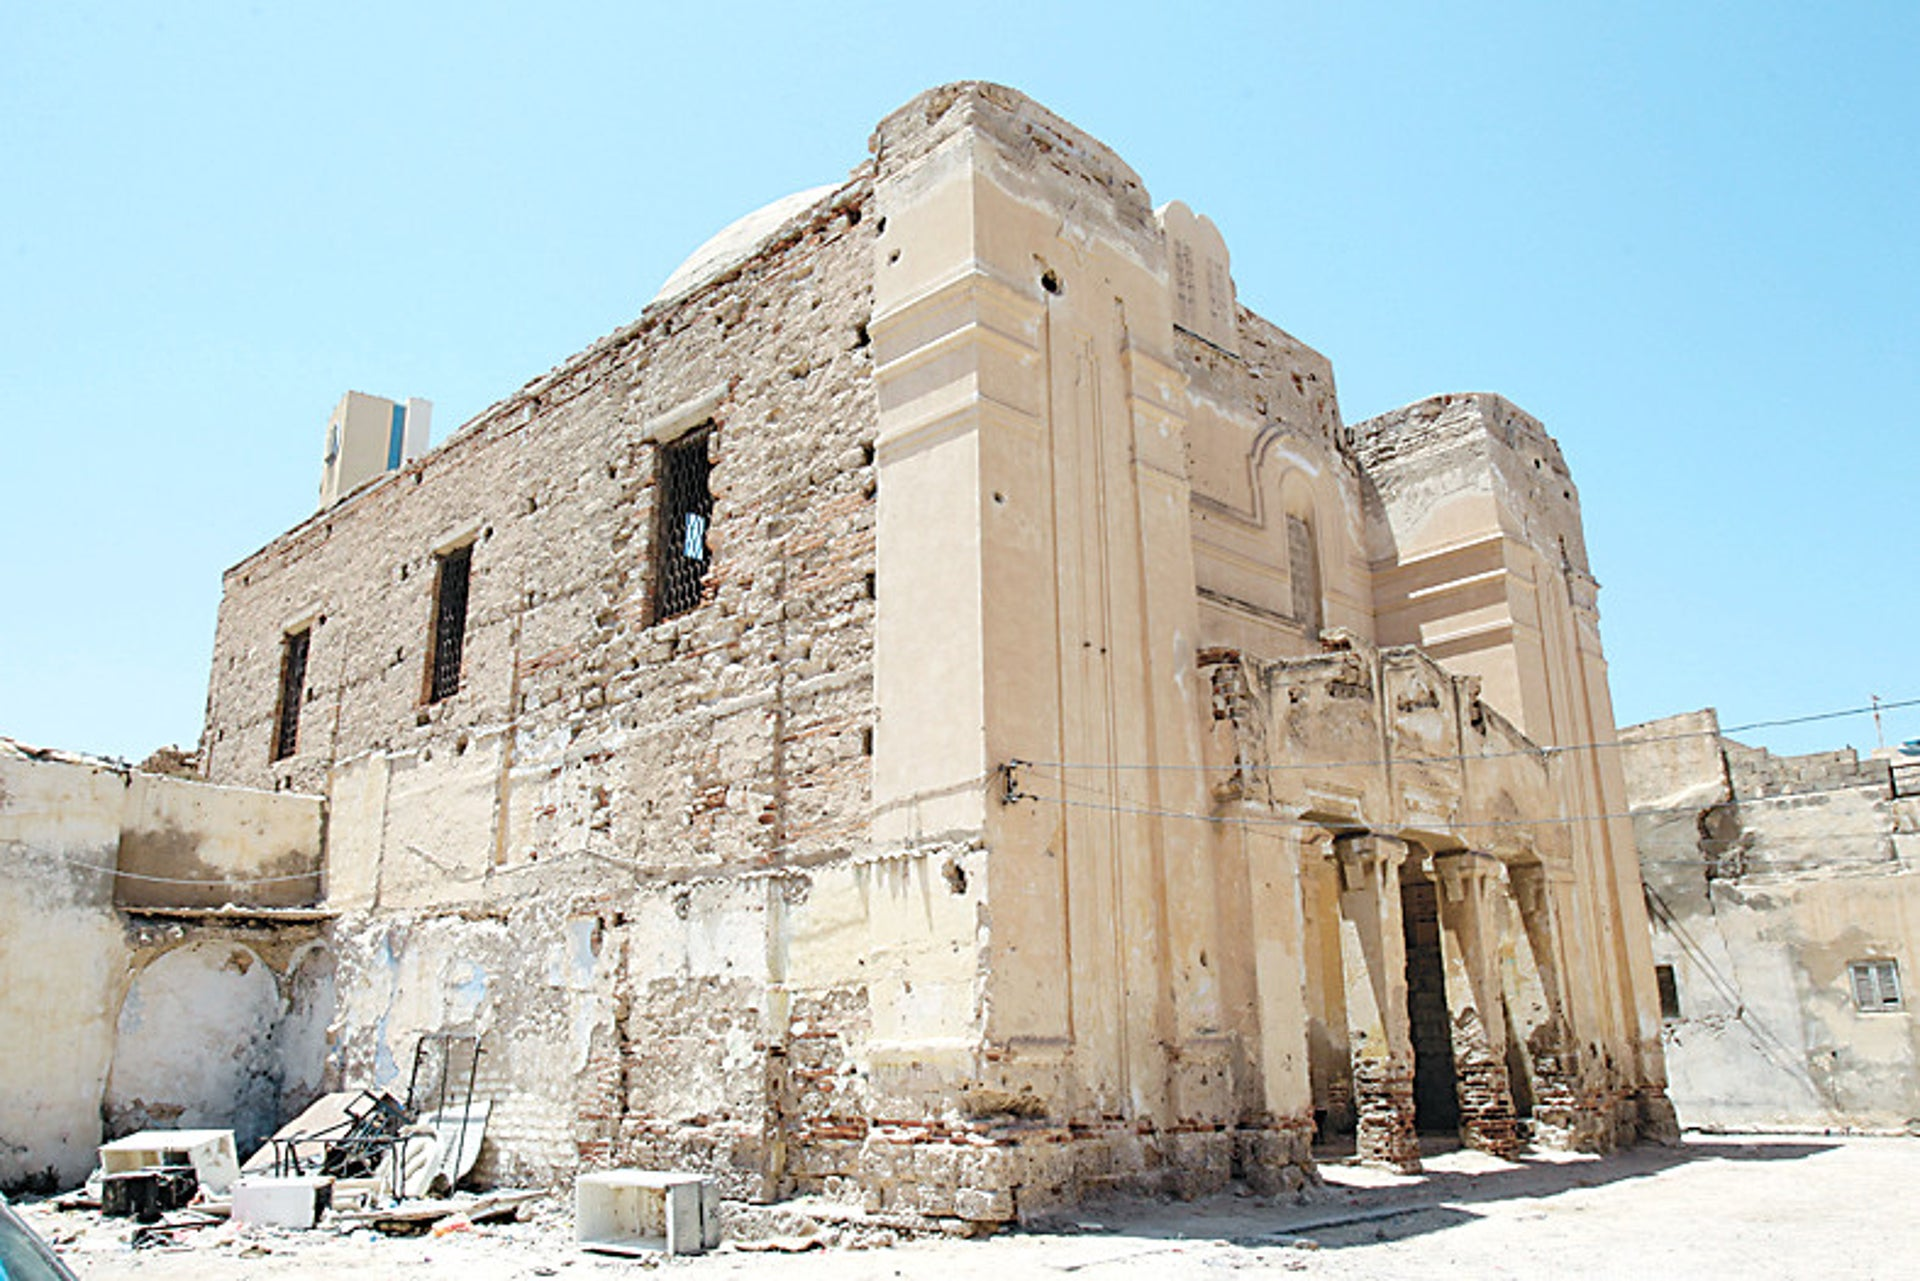 The ruins of the Dar al-Bishi synagogue in the walled old city of Tripoli, in 2011.